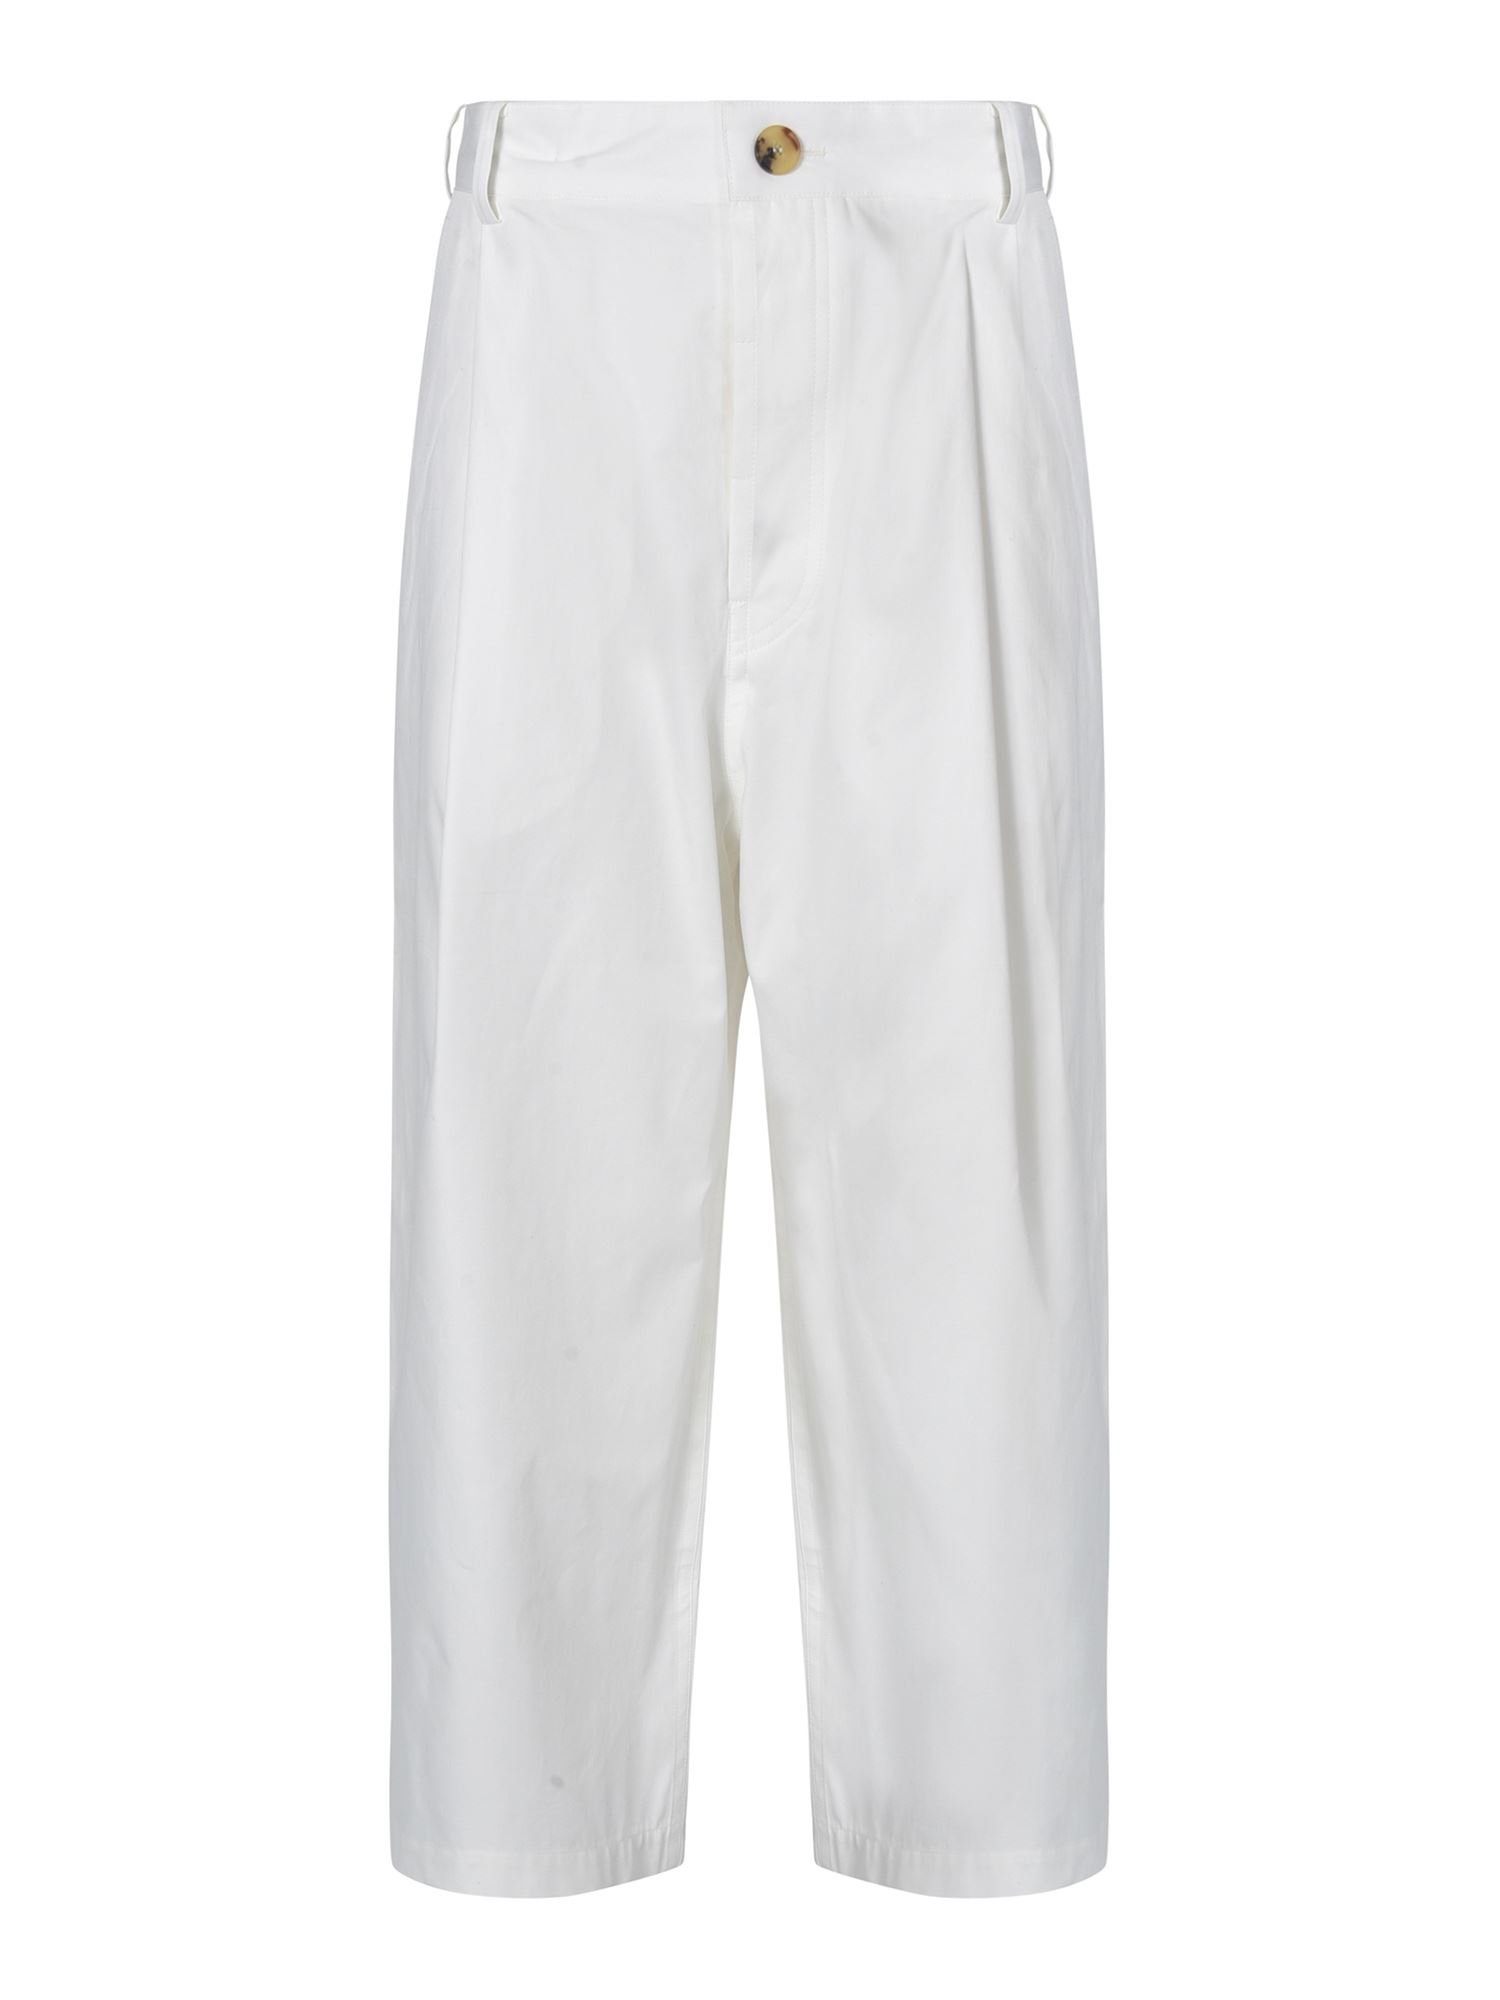 Sofie D'hoore Cottons PROVENCE CASUAL PANTS IN WHITE